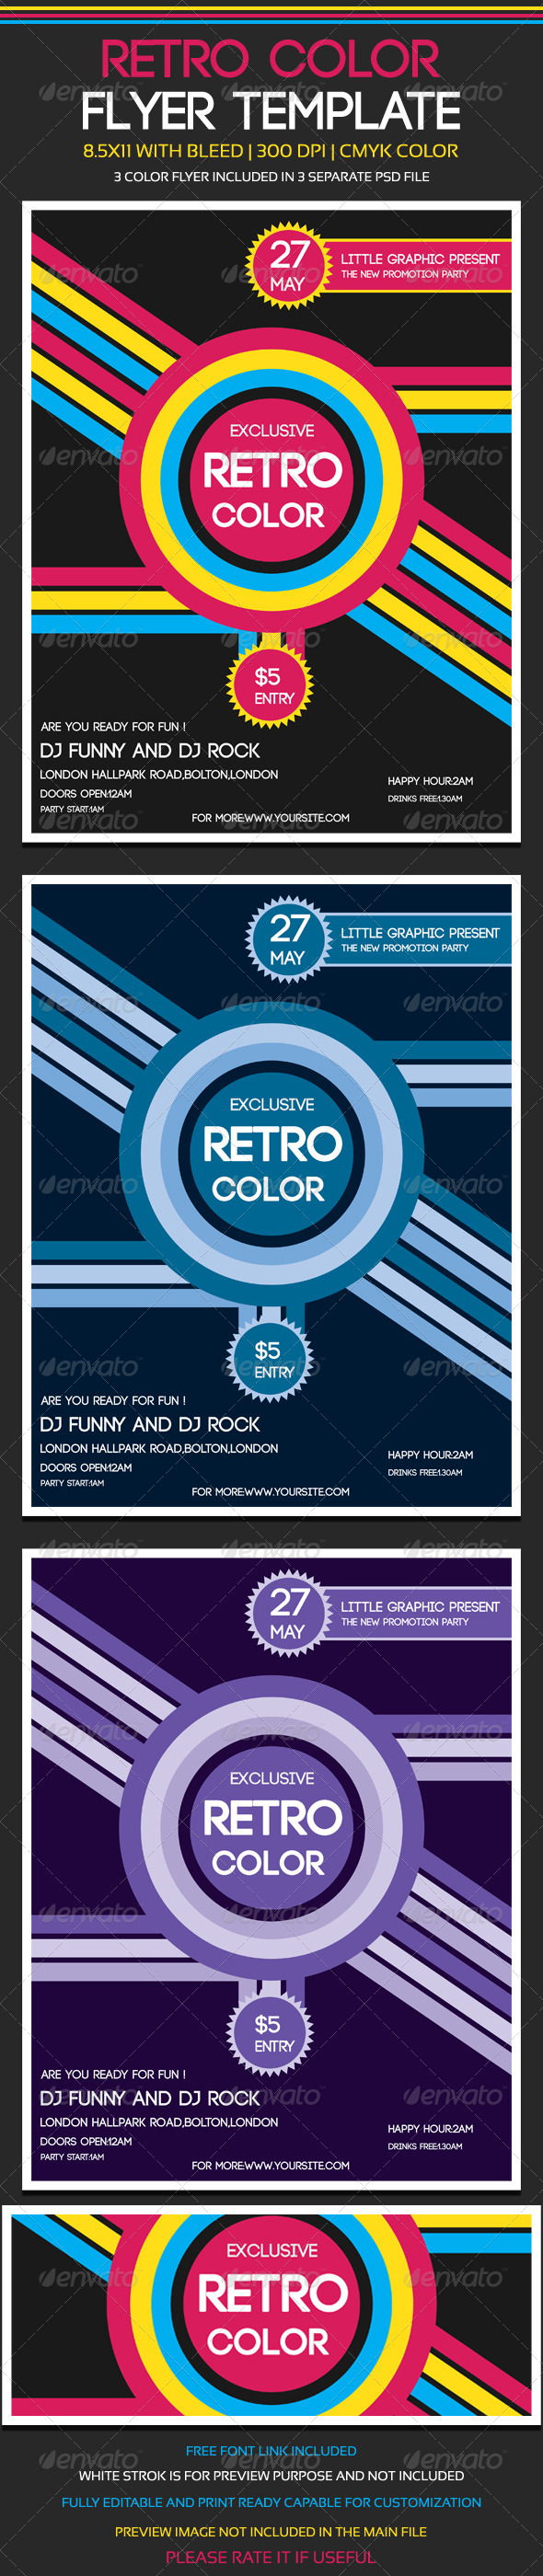 Retro Color Flyer Template - Clubs & Parties Events